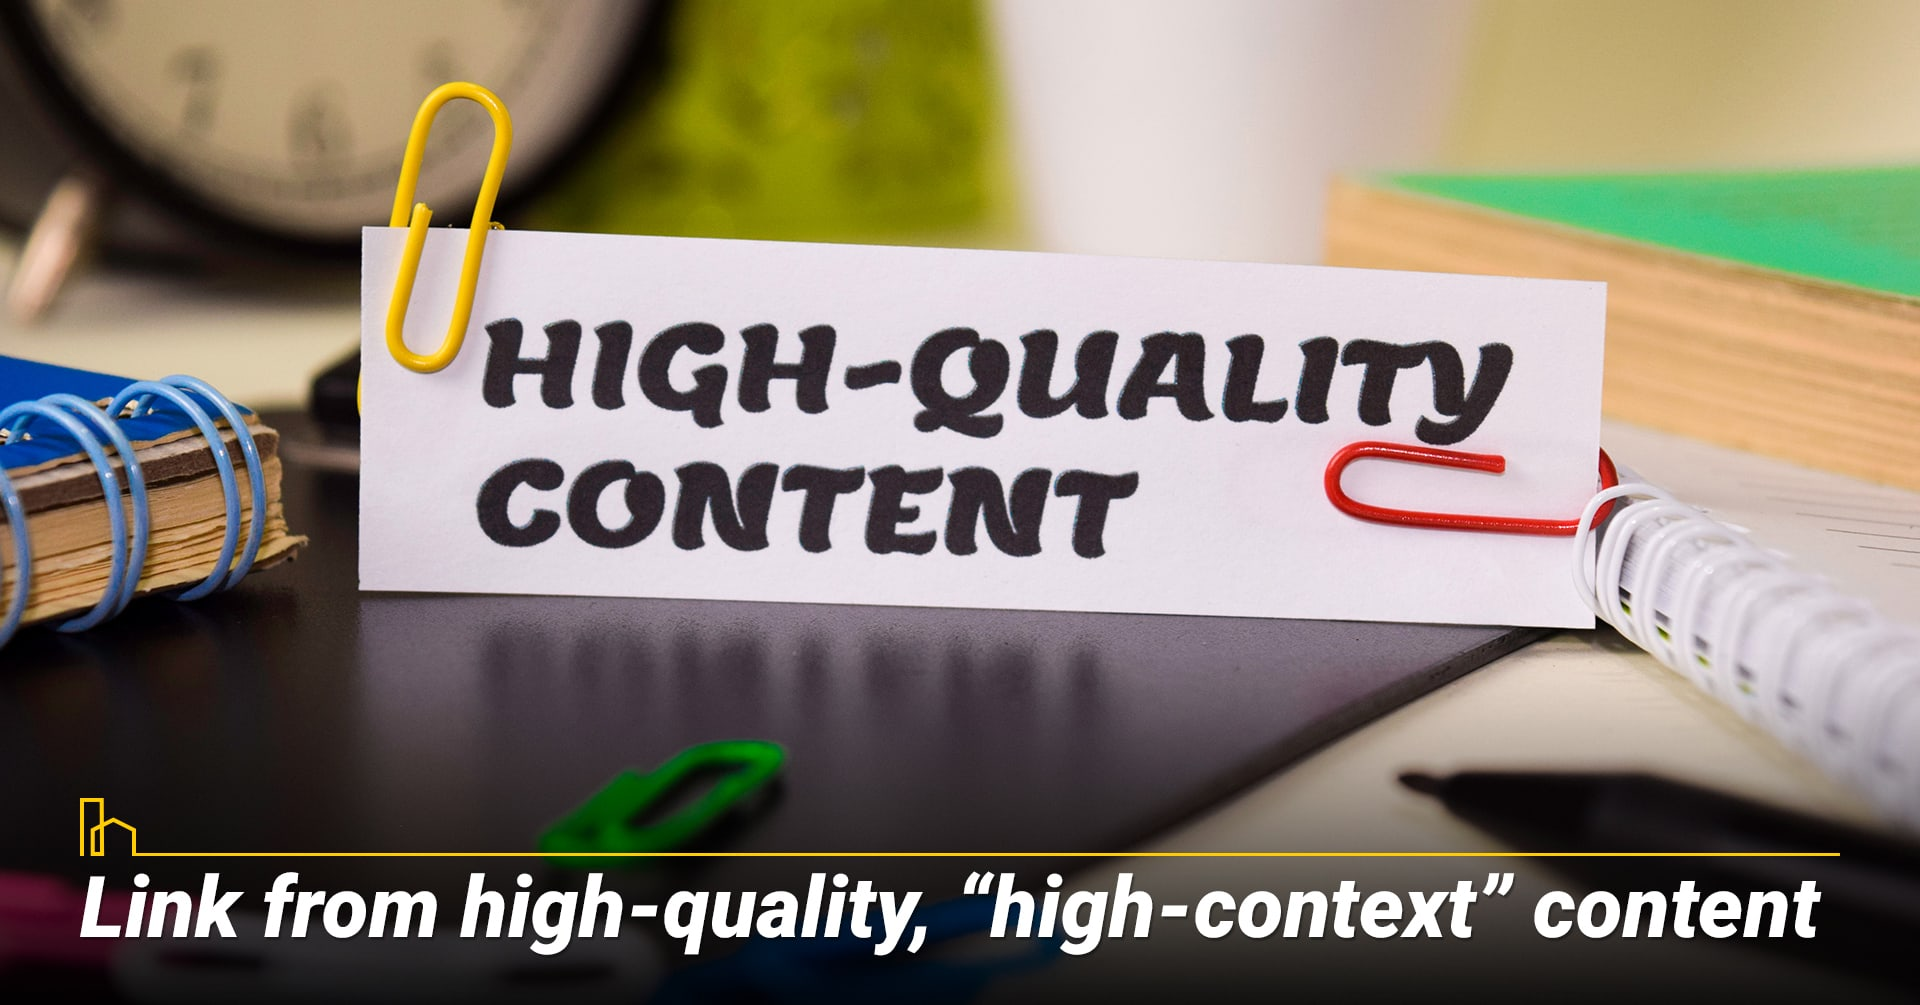 """Link from high-quality, """"high-context"""" content, high quality content"""